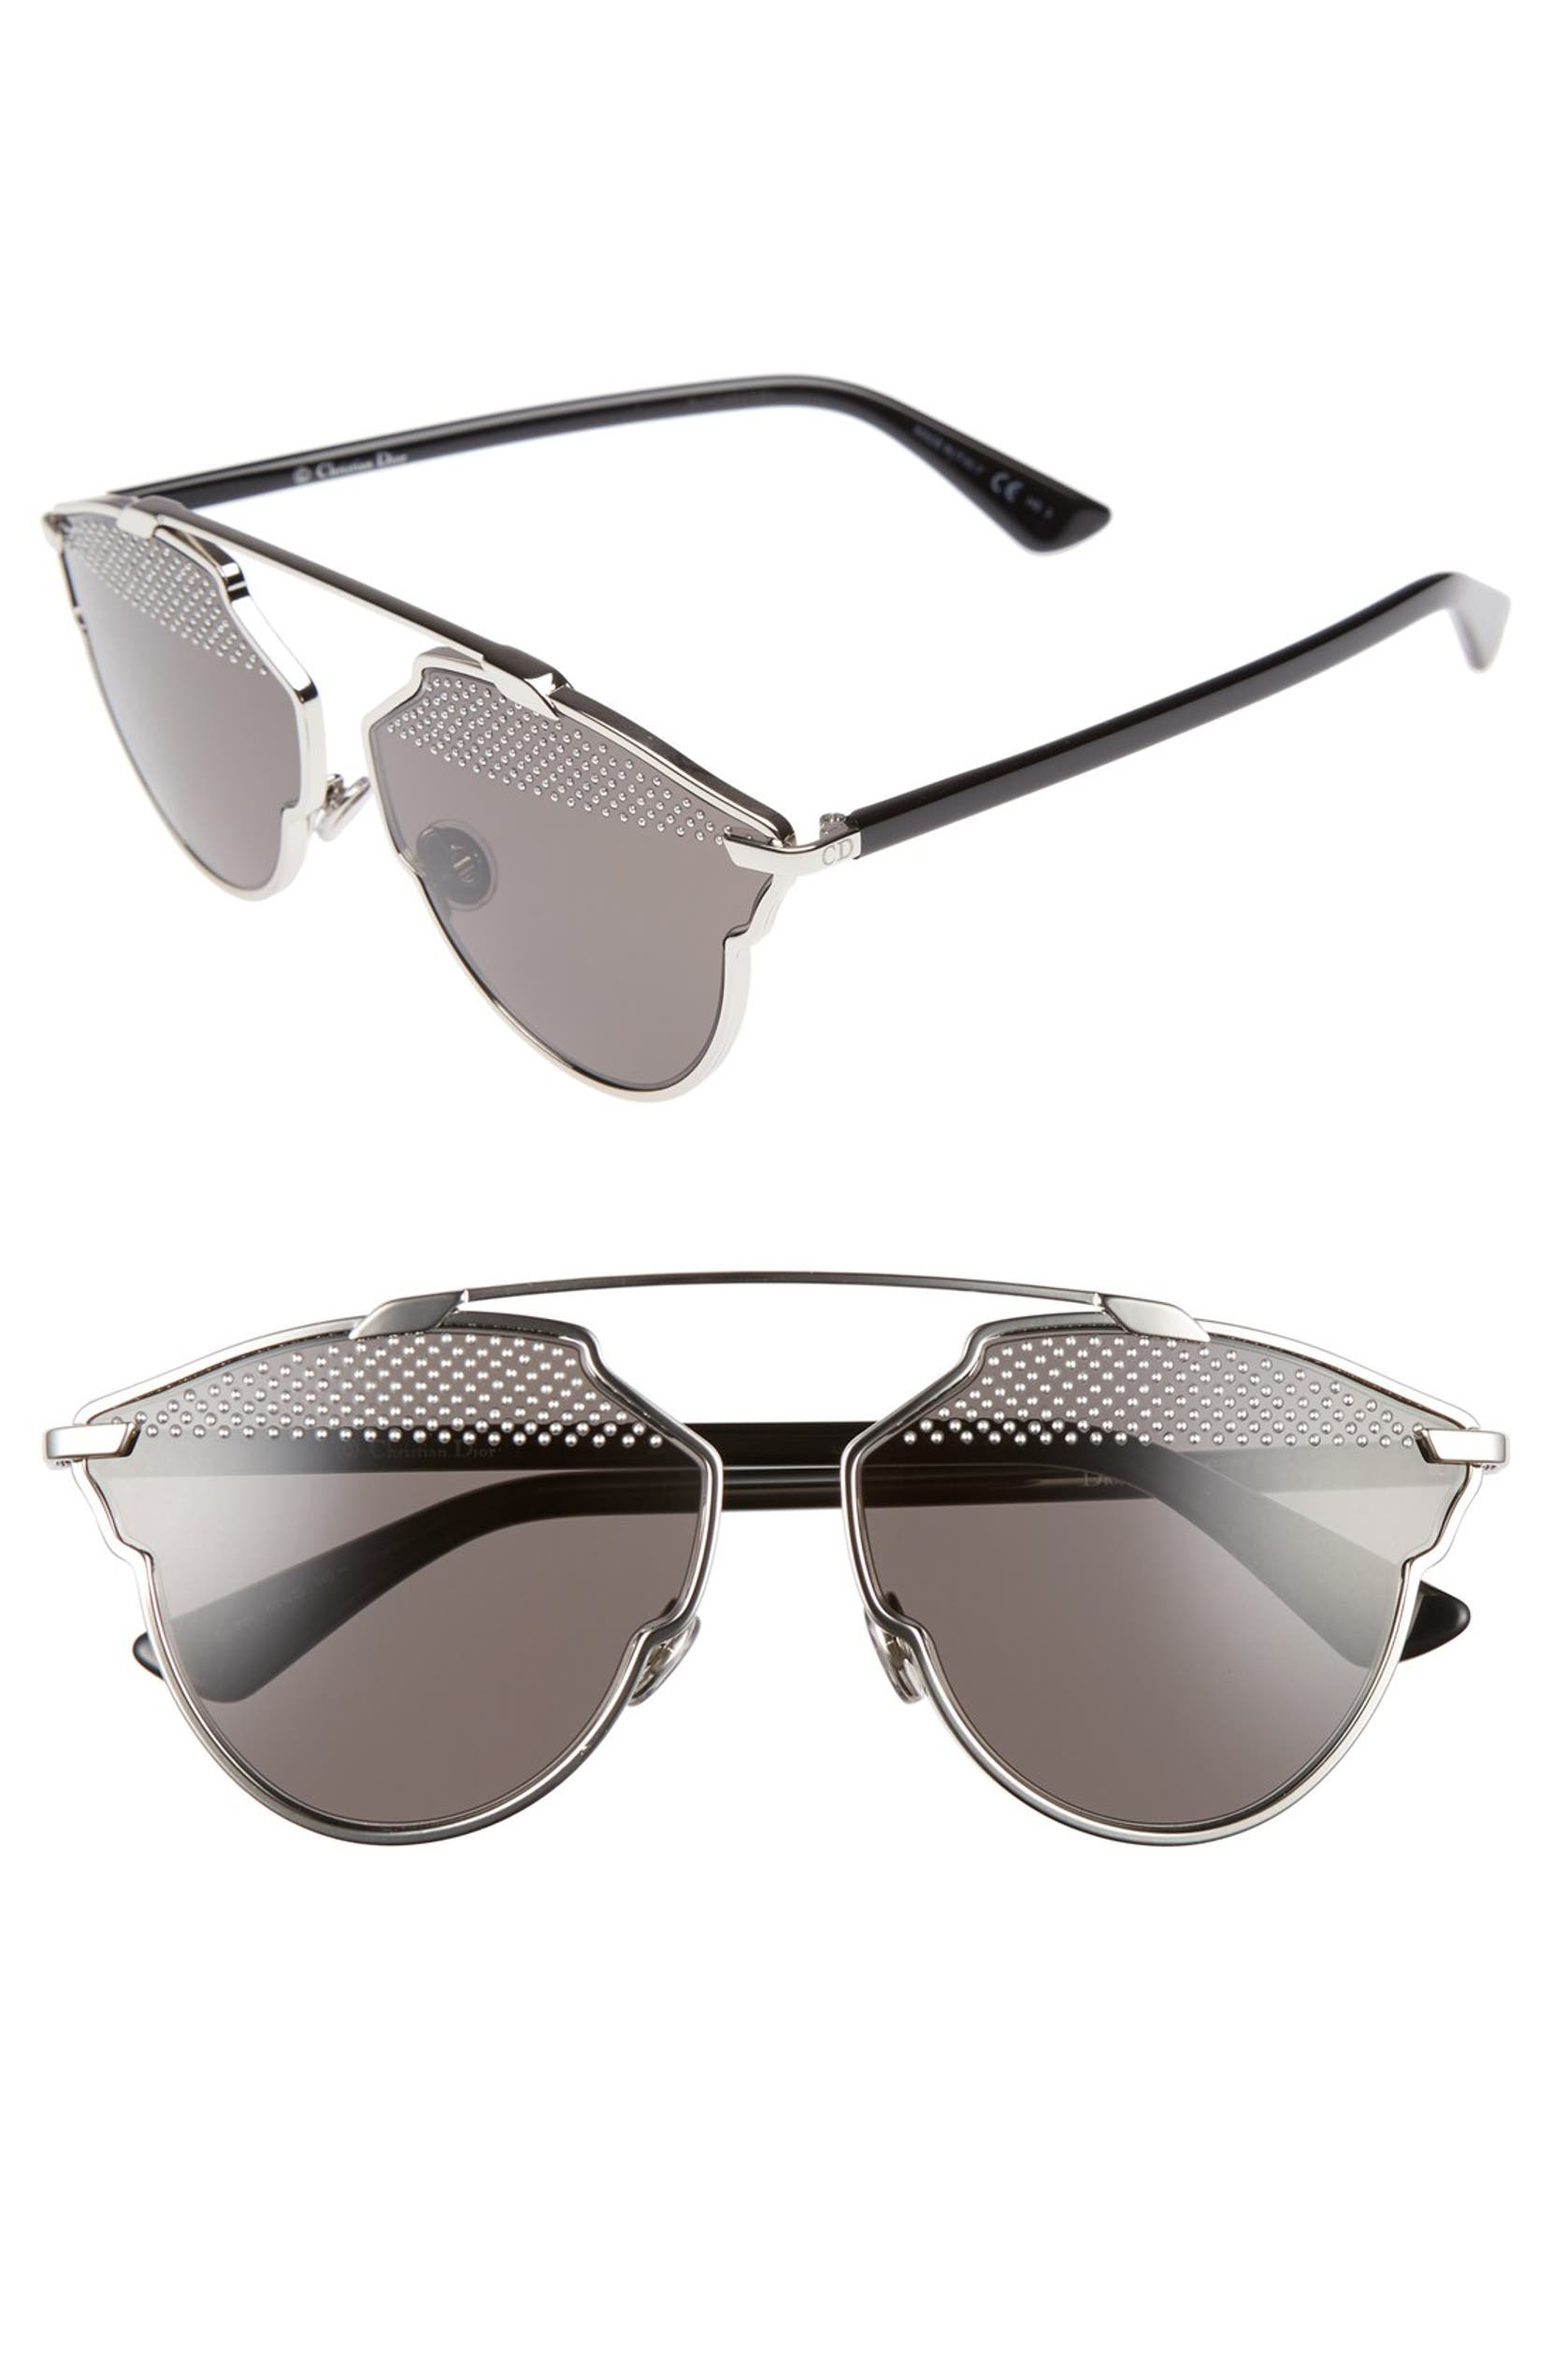 392566338ae52 Dior So Real Studded 59mm Brow Bar Sunglasses